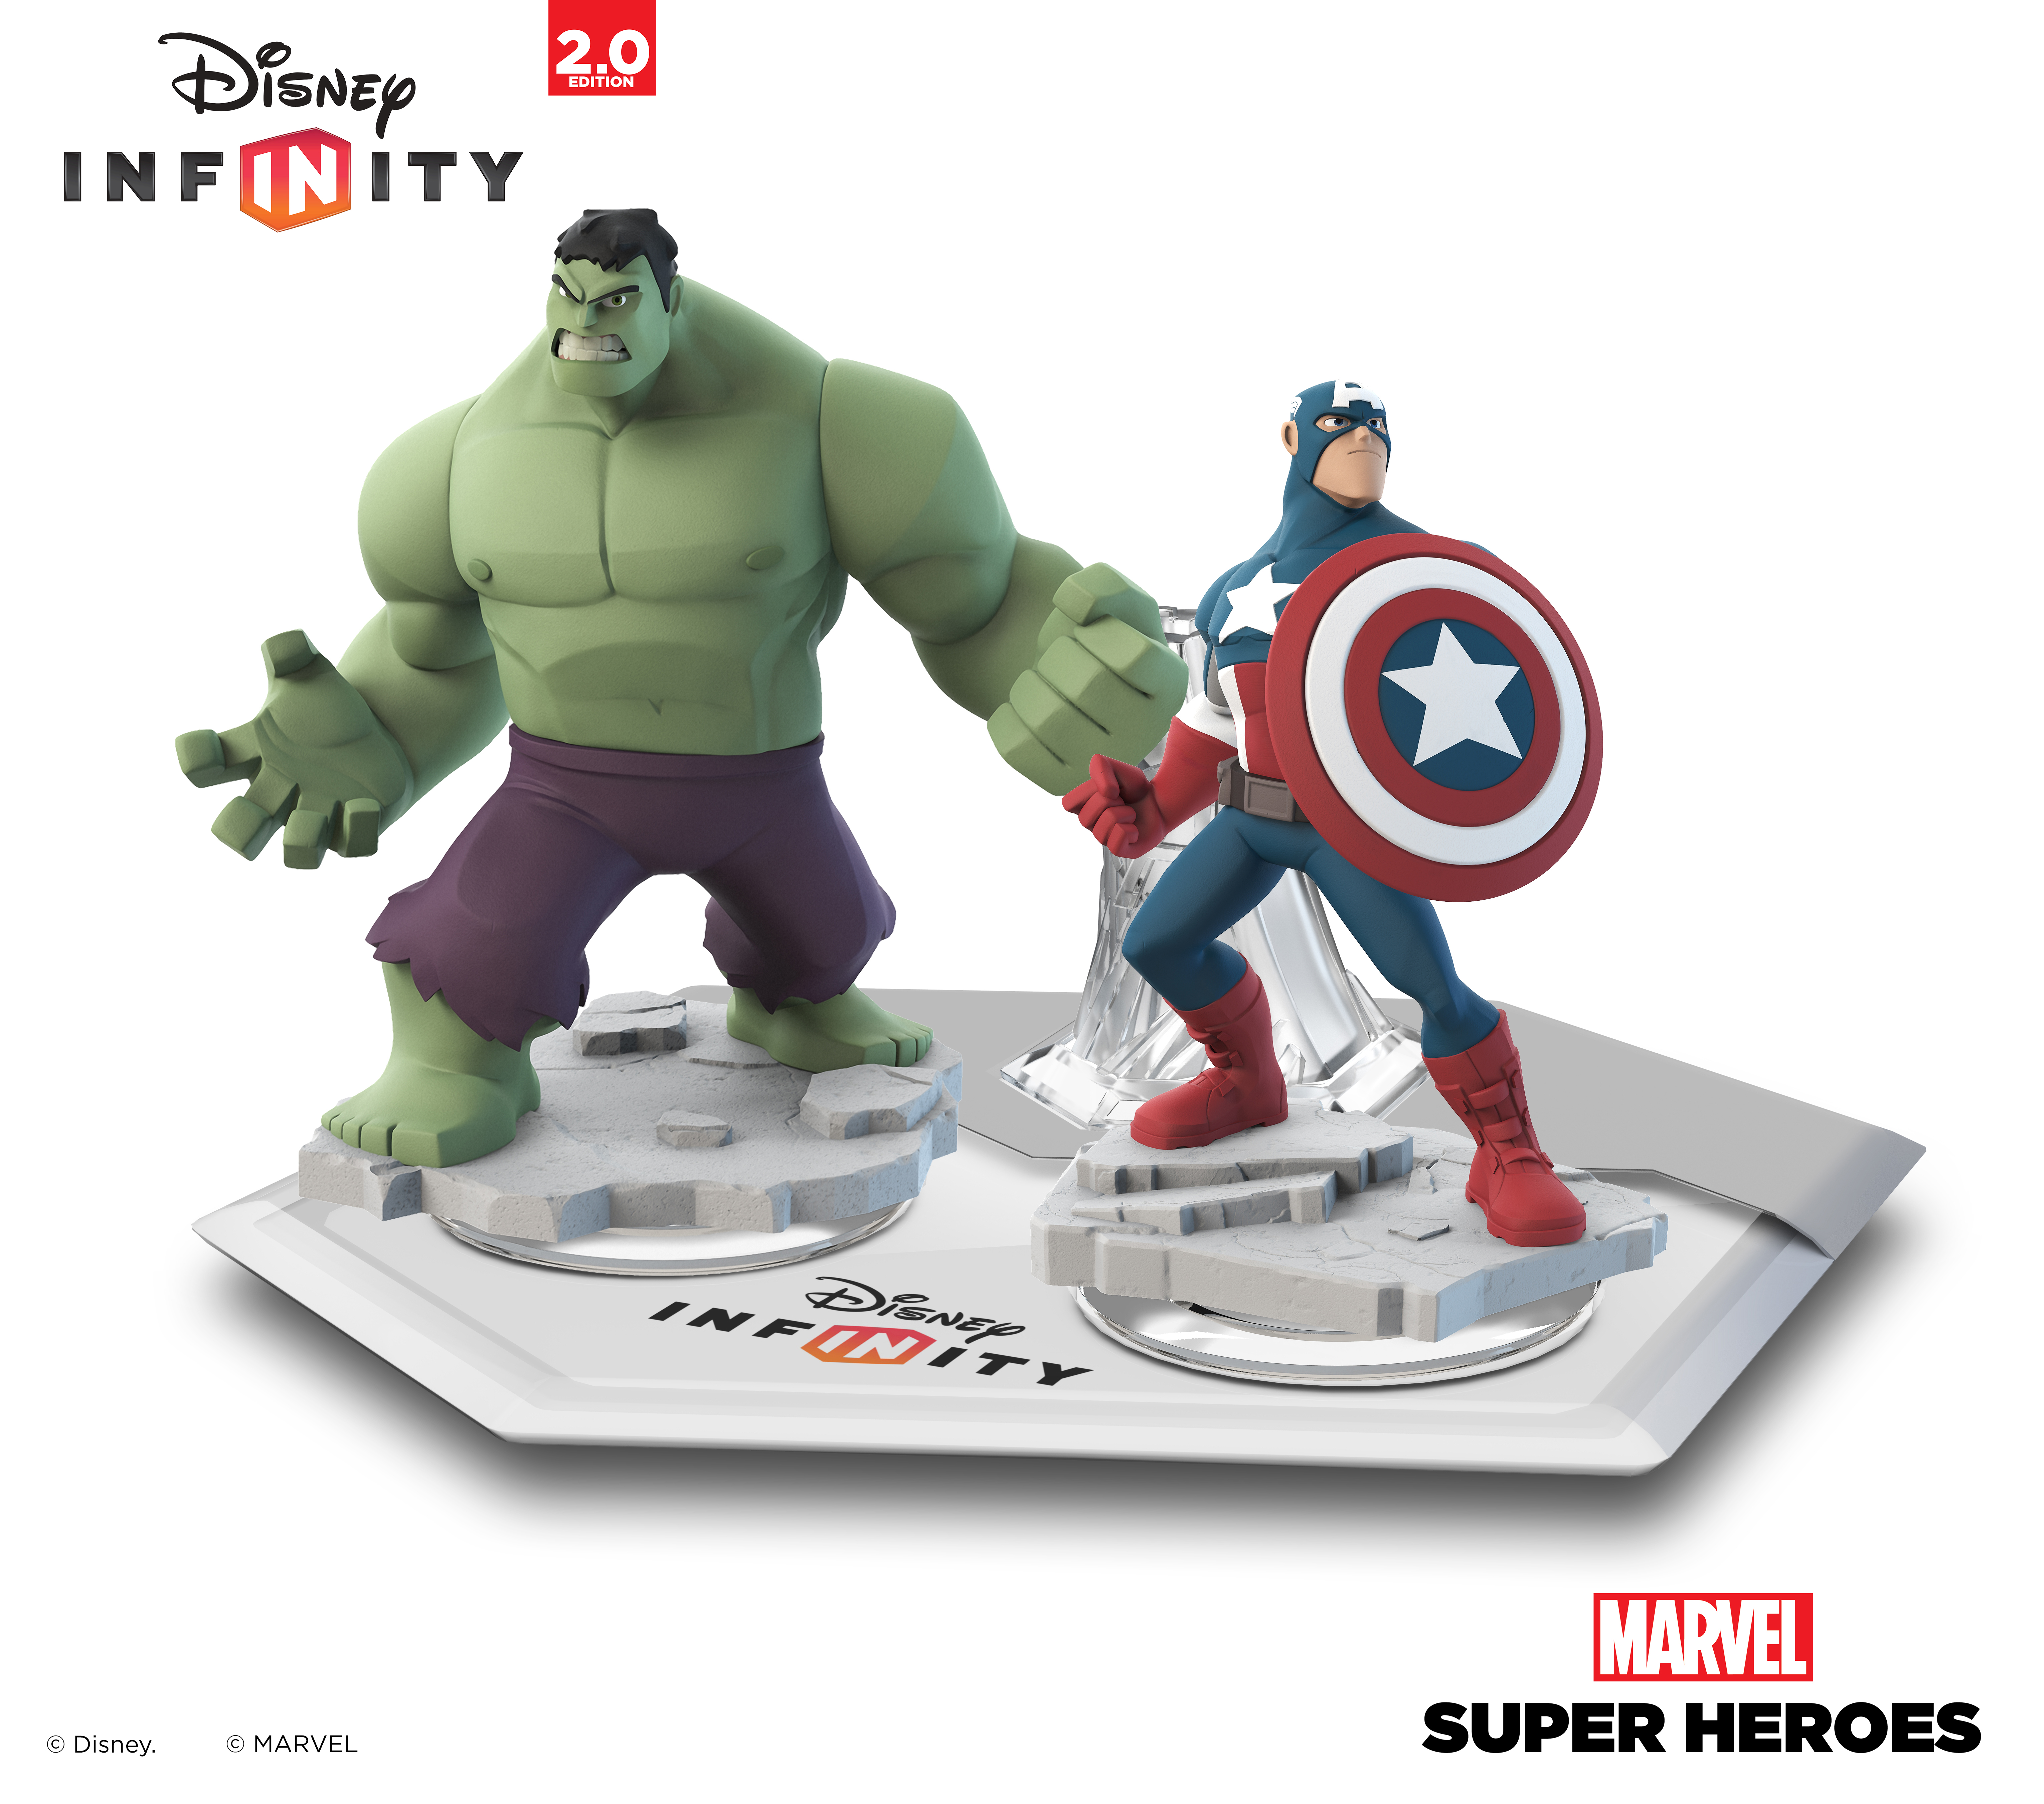 Watch the Hulk parallel park in this Disney Infinity trailer